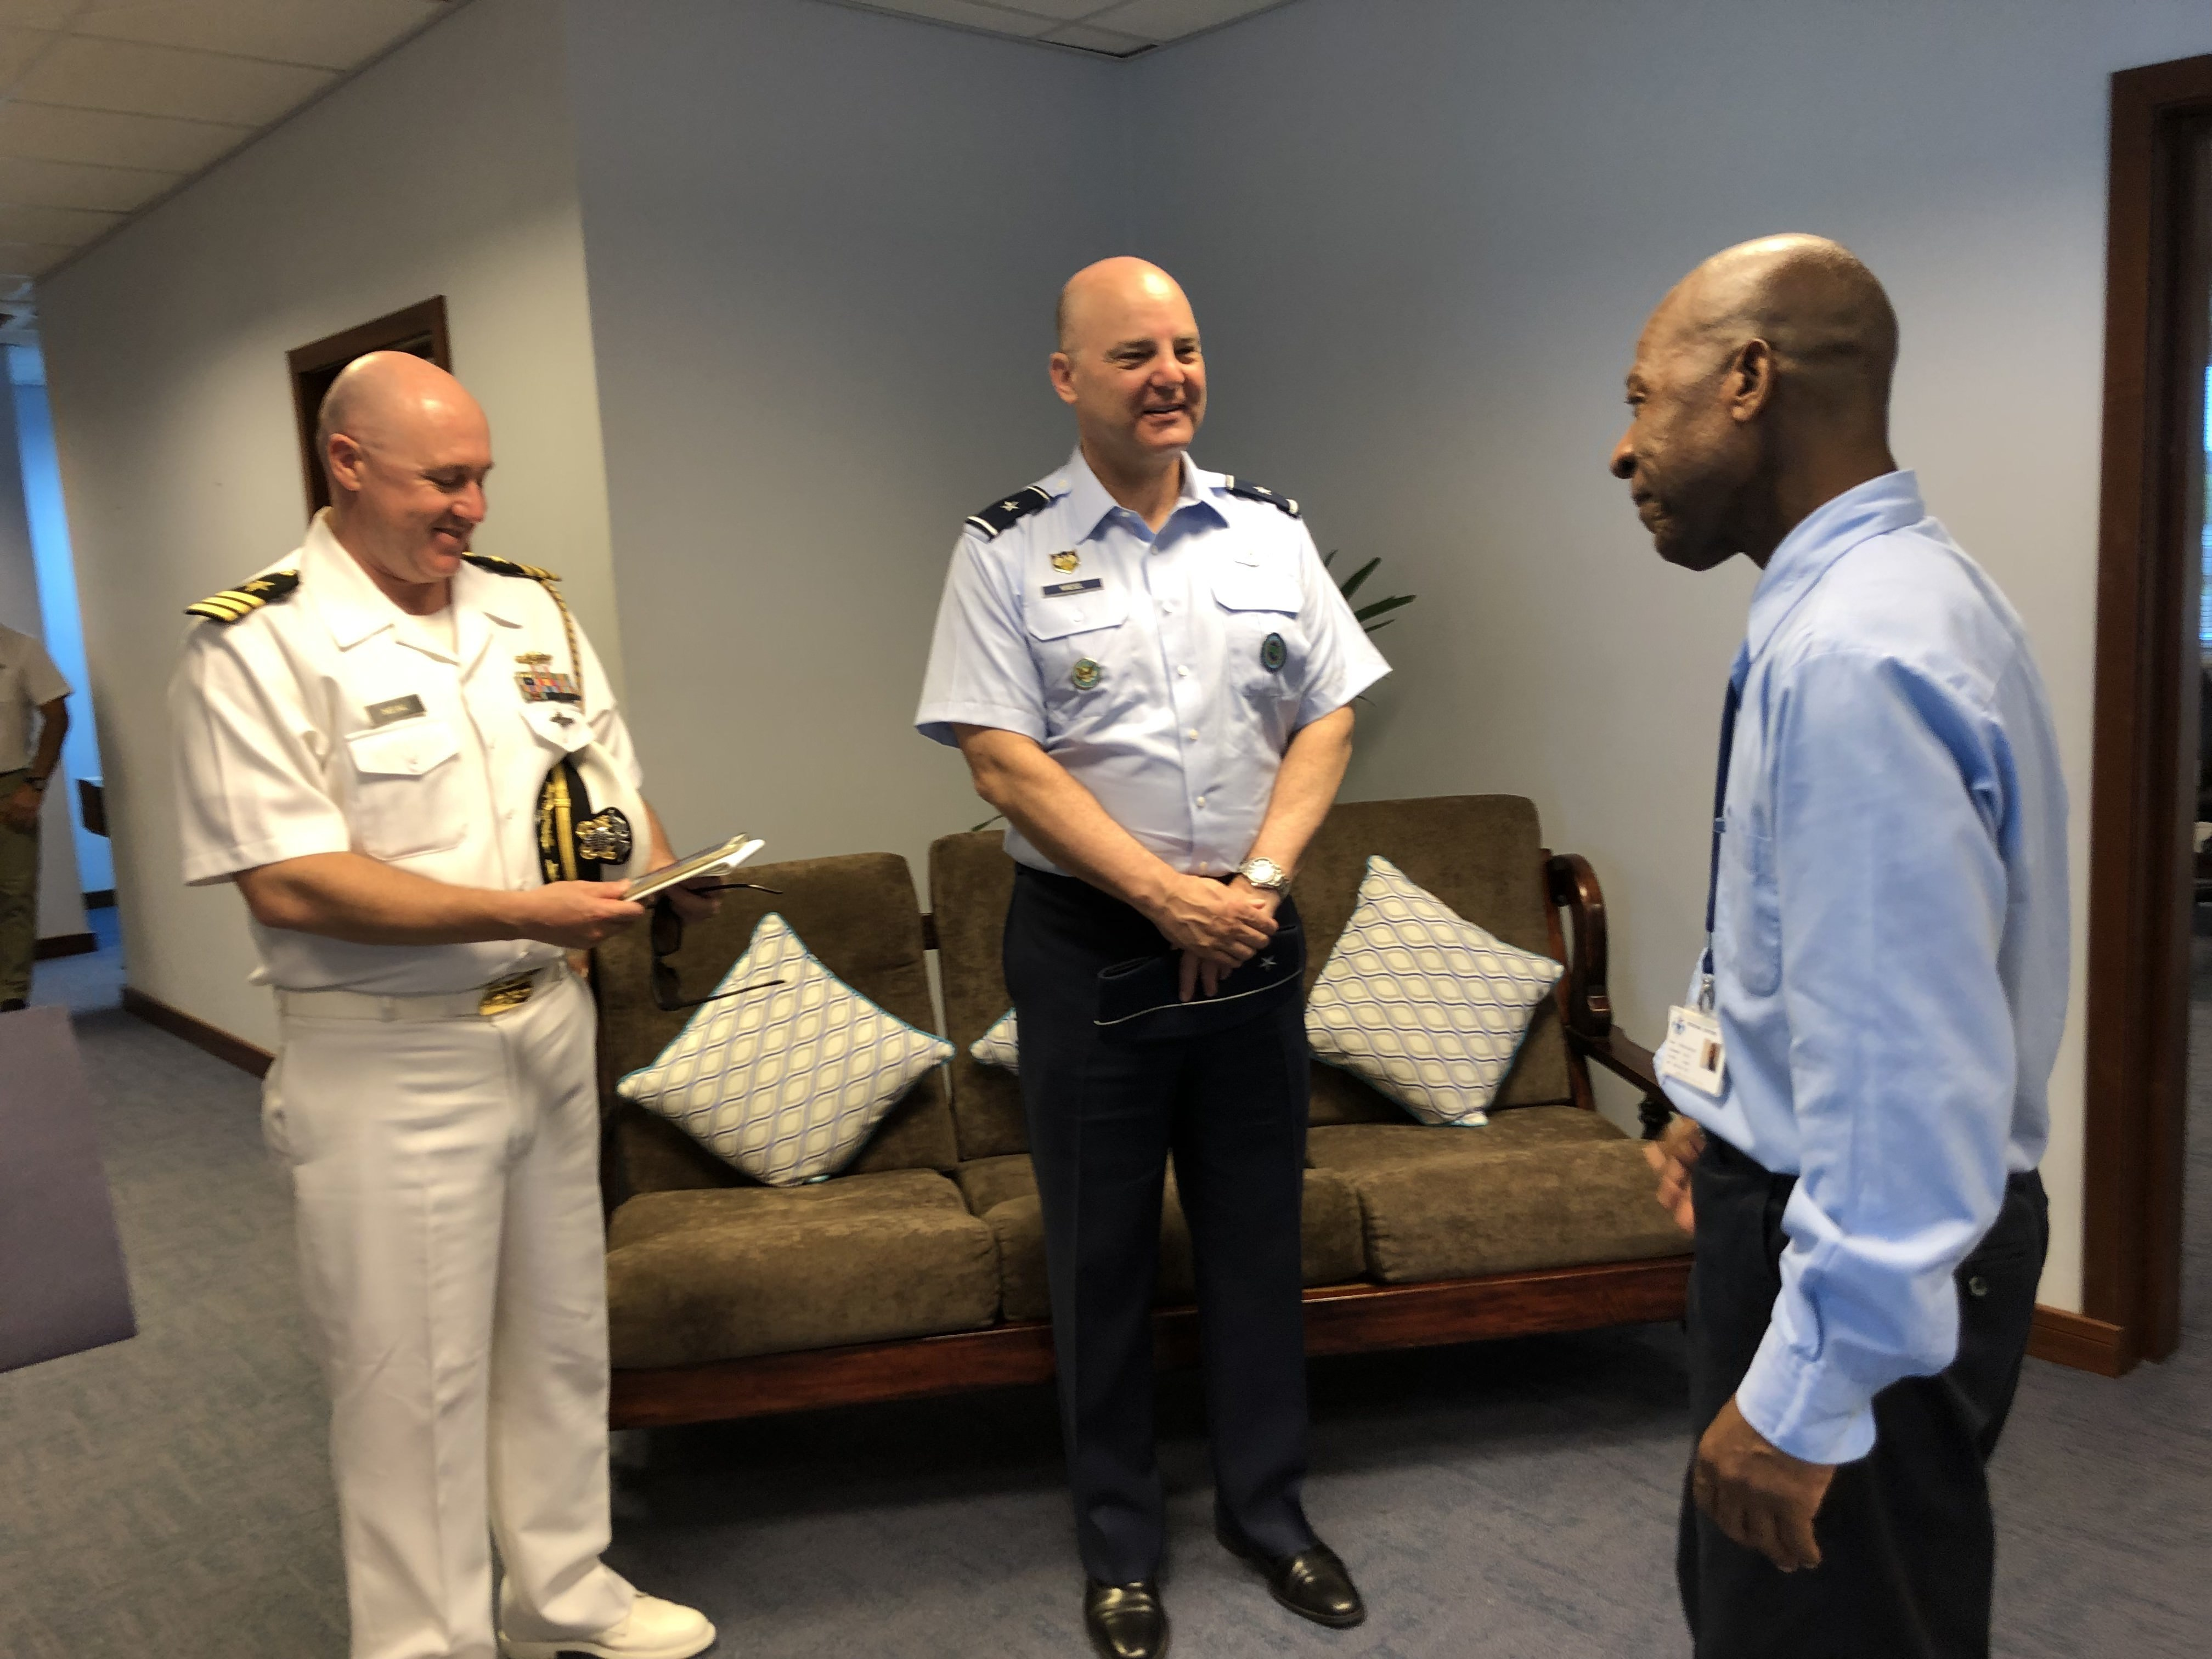 U.S. Air Force Brig. Gen. James R. Kriesel, center, deputy commanding general of Combined Joint Task Force-Horn of Africa (CJTF-HOA), meets with a staff member at the Regional Centre for Operations Coordination (RCOC) in Seychelles, March 26, 2019. The RCOC, modeled after the Regional Maritime Information Exchange and Sharing Mechanism in Madagascar, helps provide a more effective and coordinated fight against piracy in the region. (Courtesy Photo)